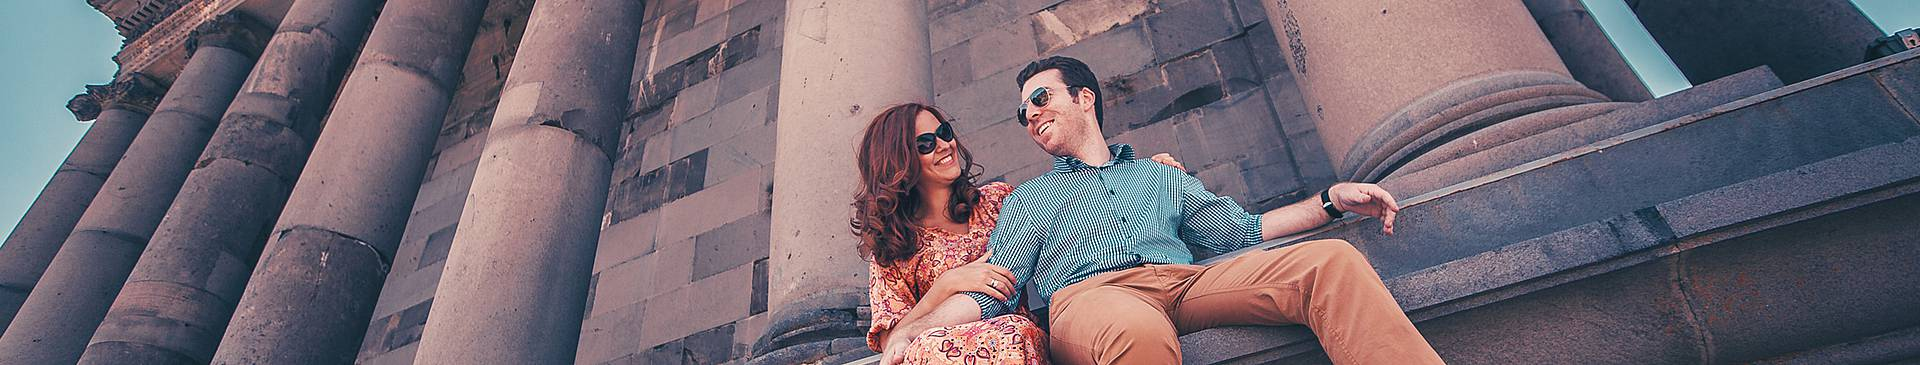 Trips for couples in Armenia